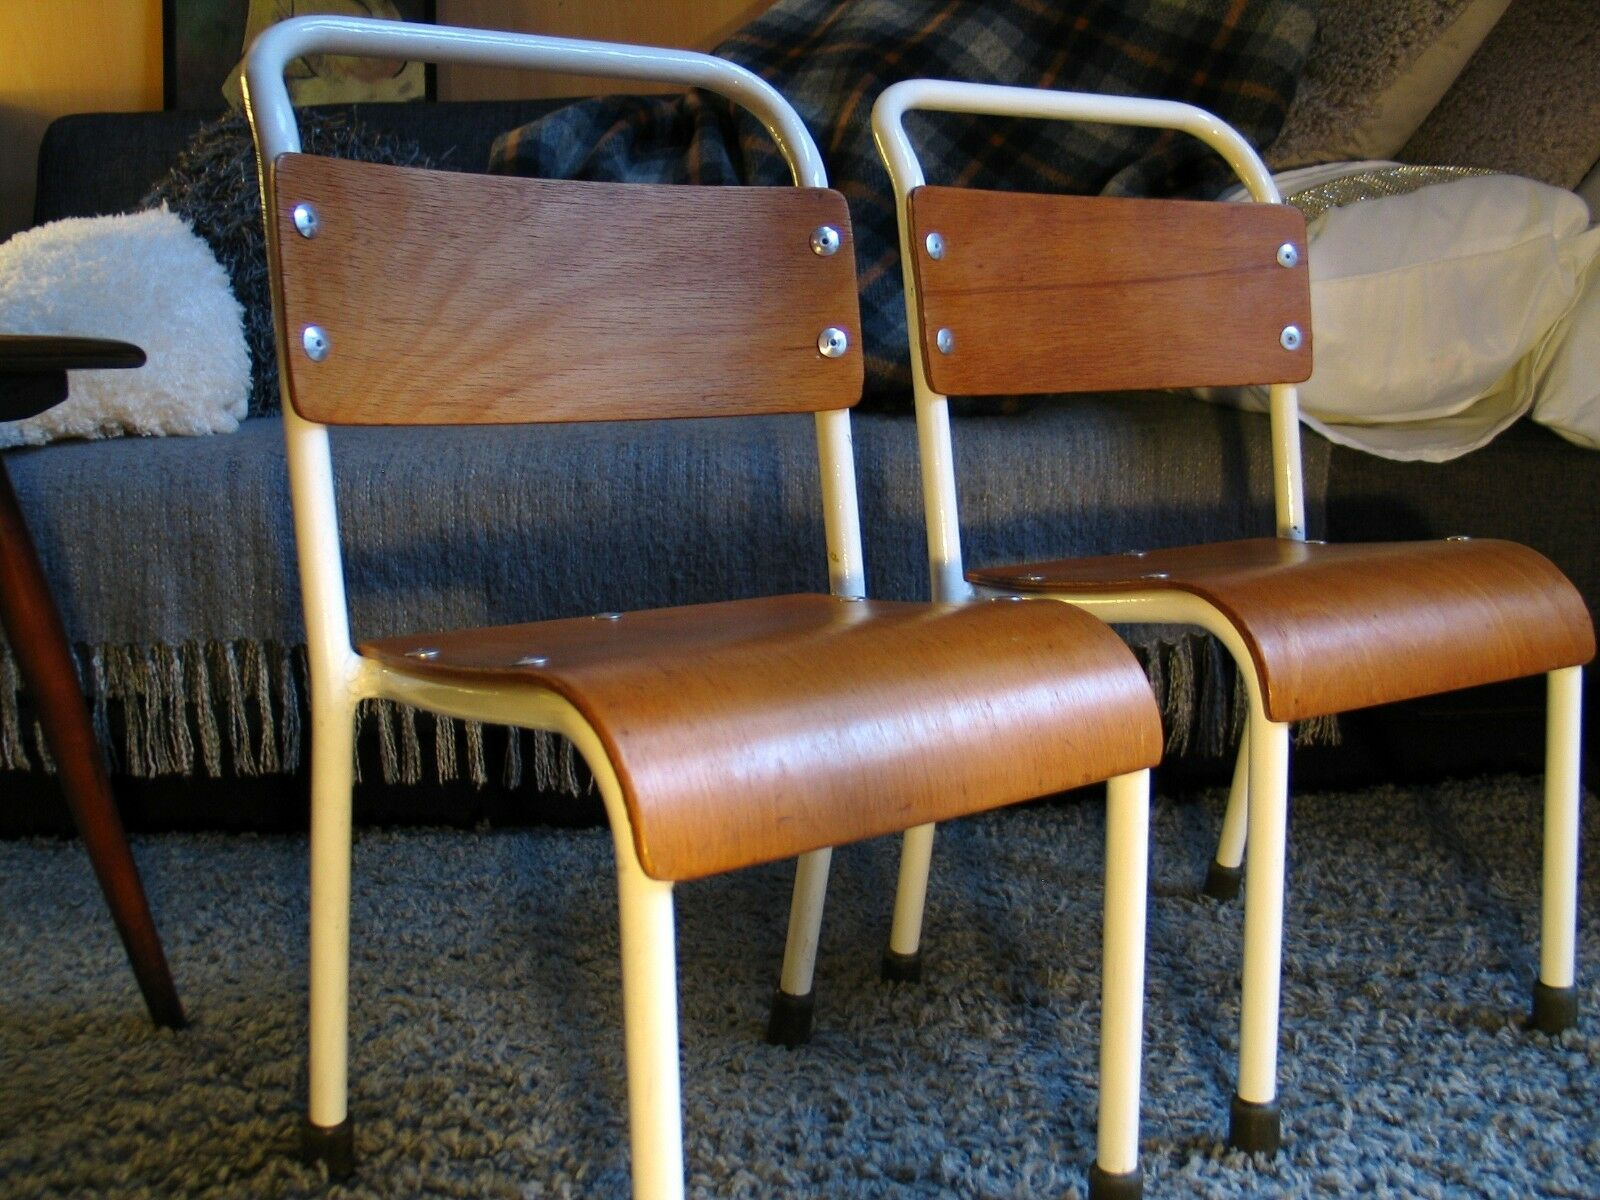 Gorgeous Retro Vintage small childrens childs school chair - two available